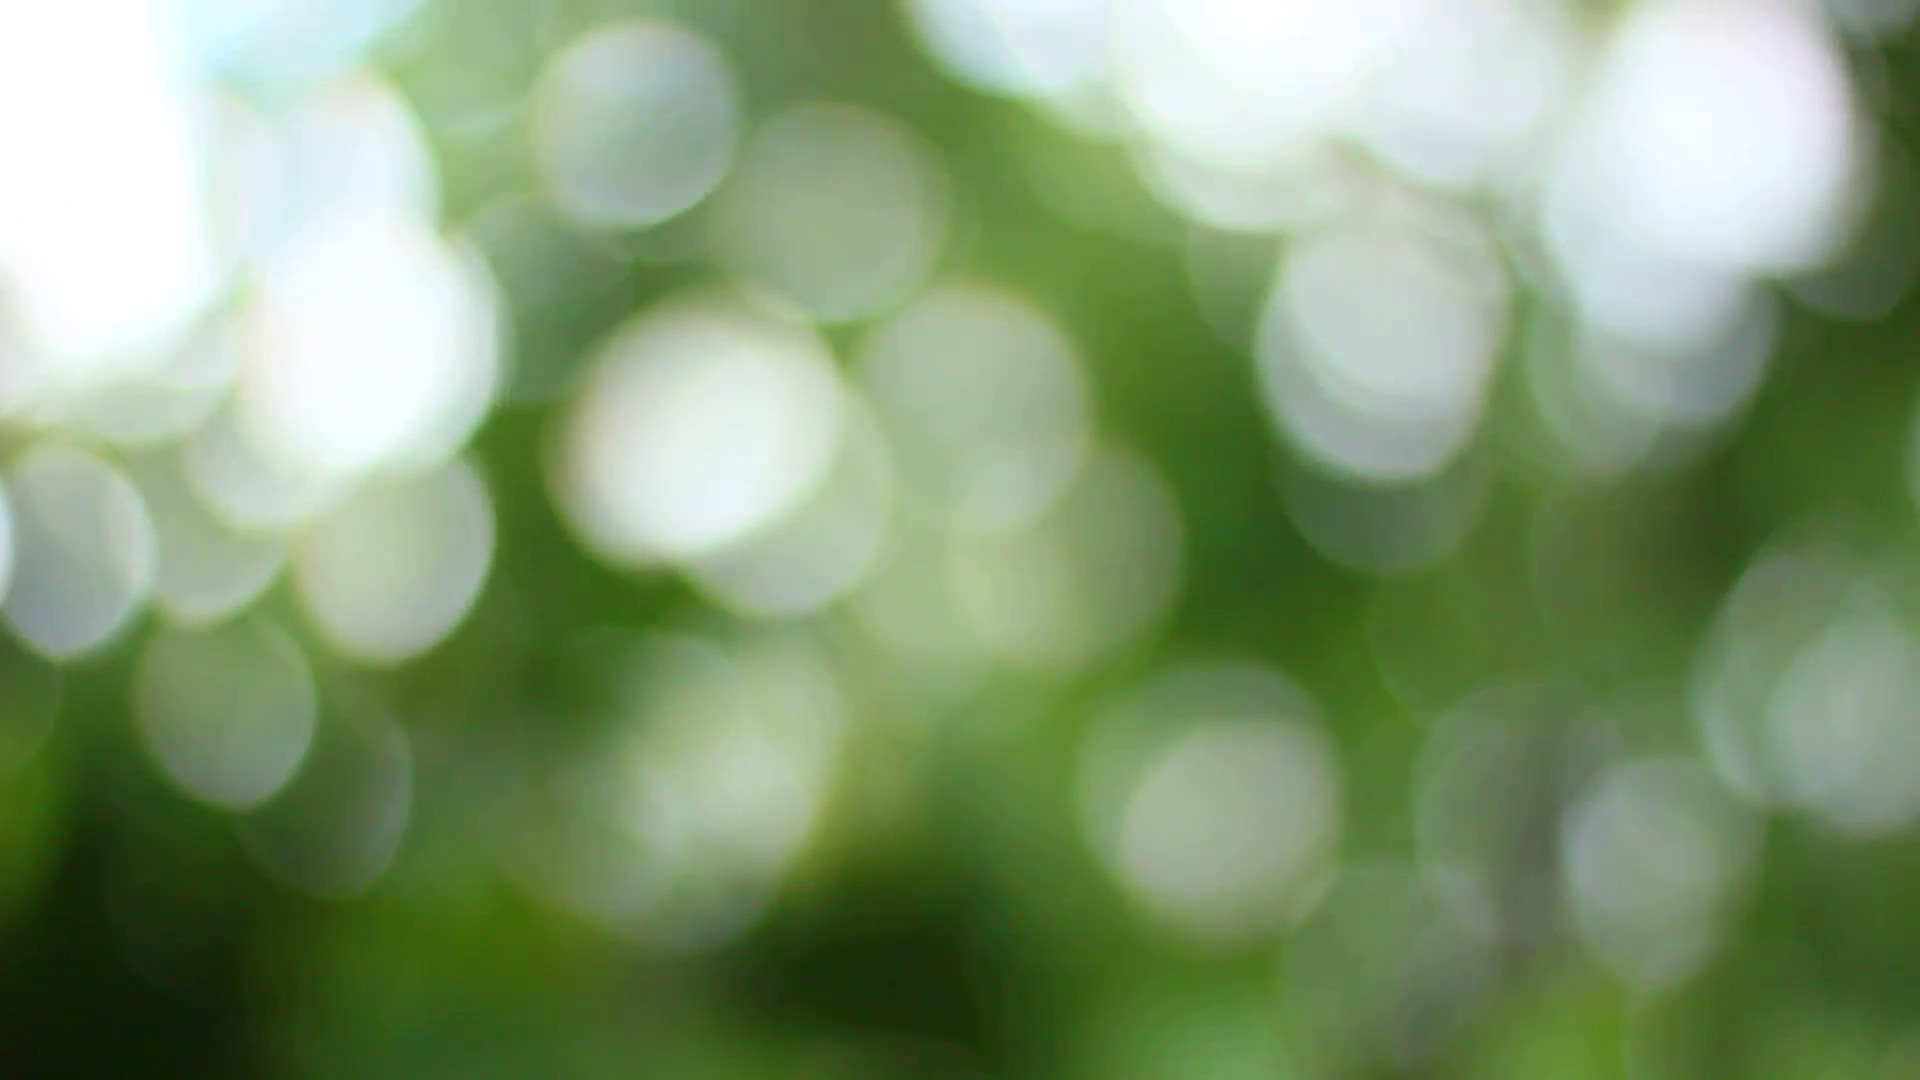 natural green bokeh background Stock Video Footage - Videoblocks